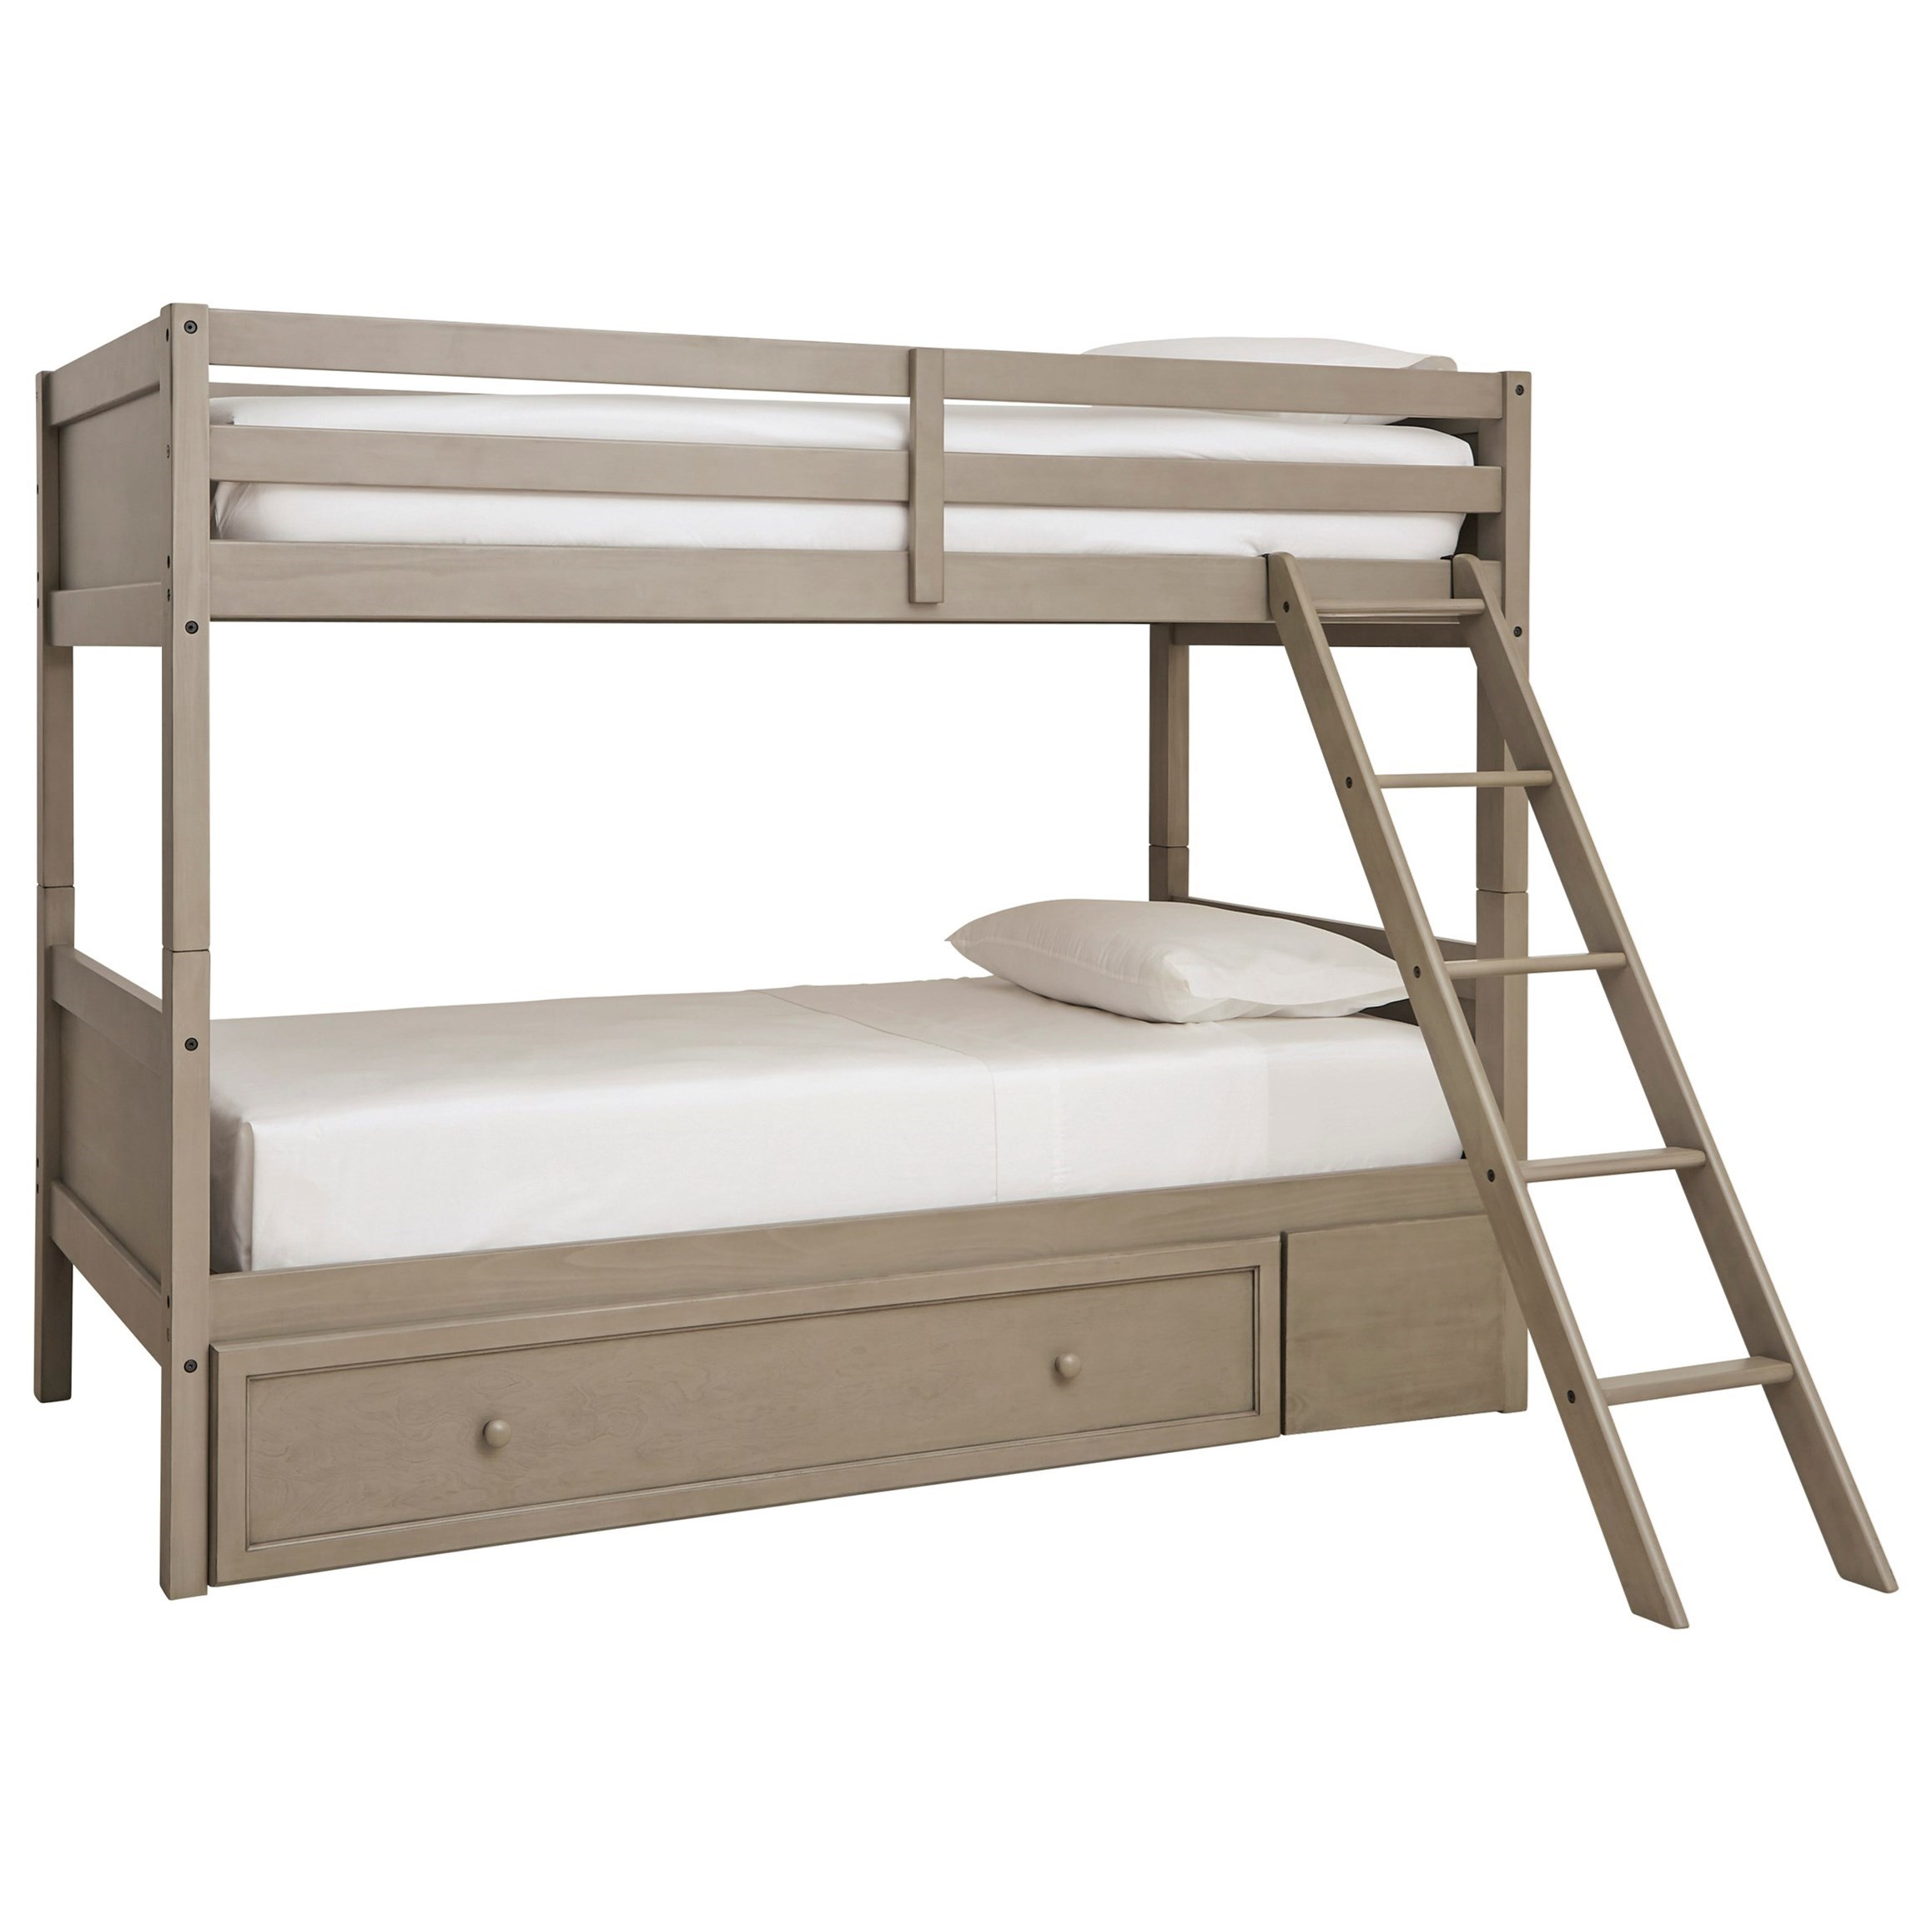 Twin/Twin Bunk Bed w/ Ladder & Storage